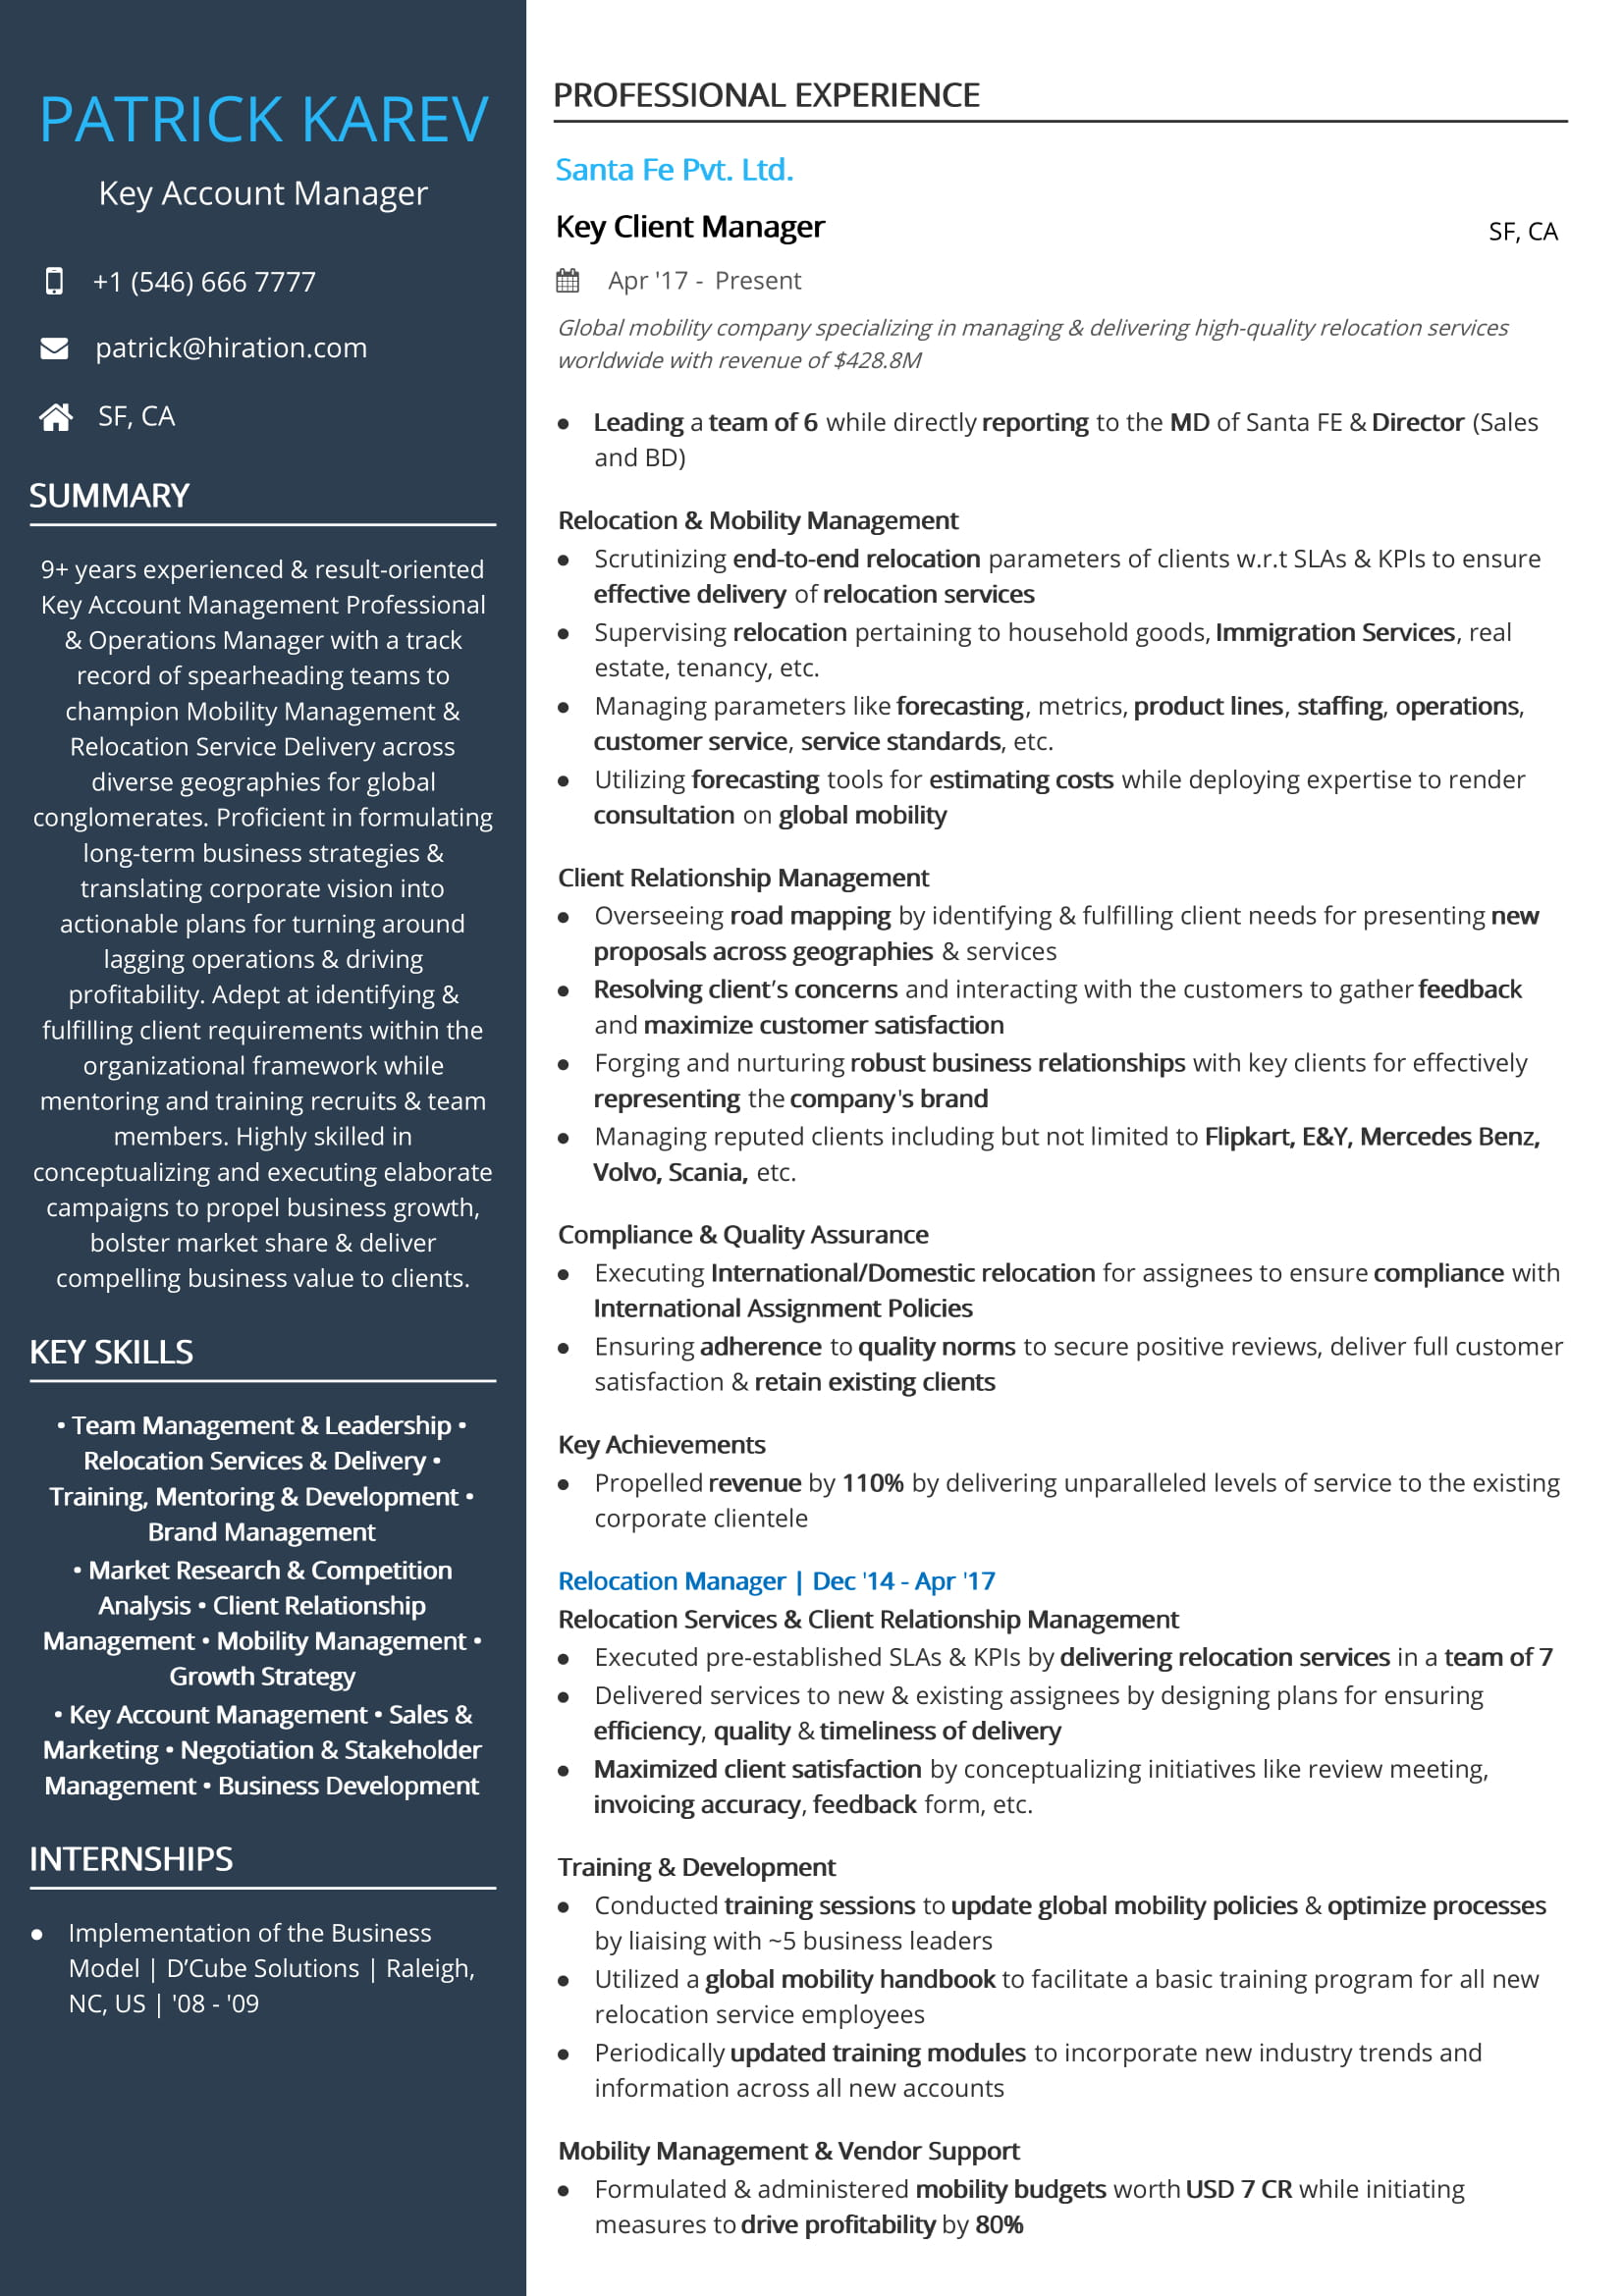 Key Account Manager Resume Sample